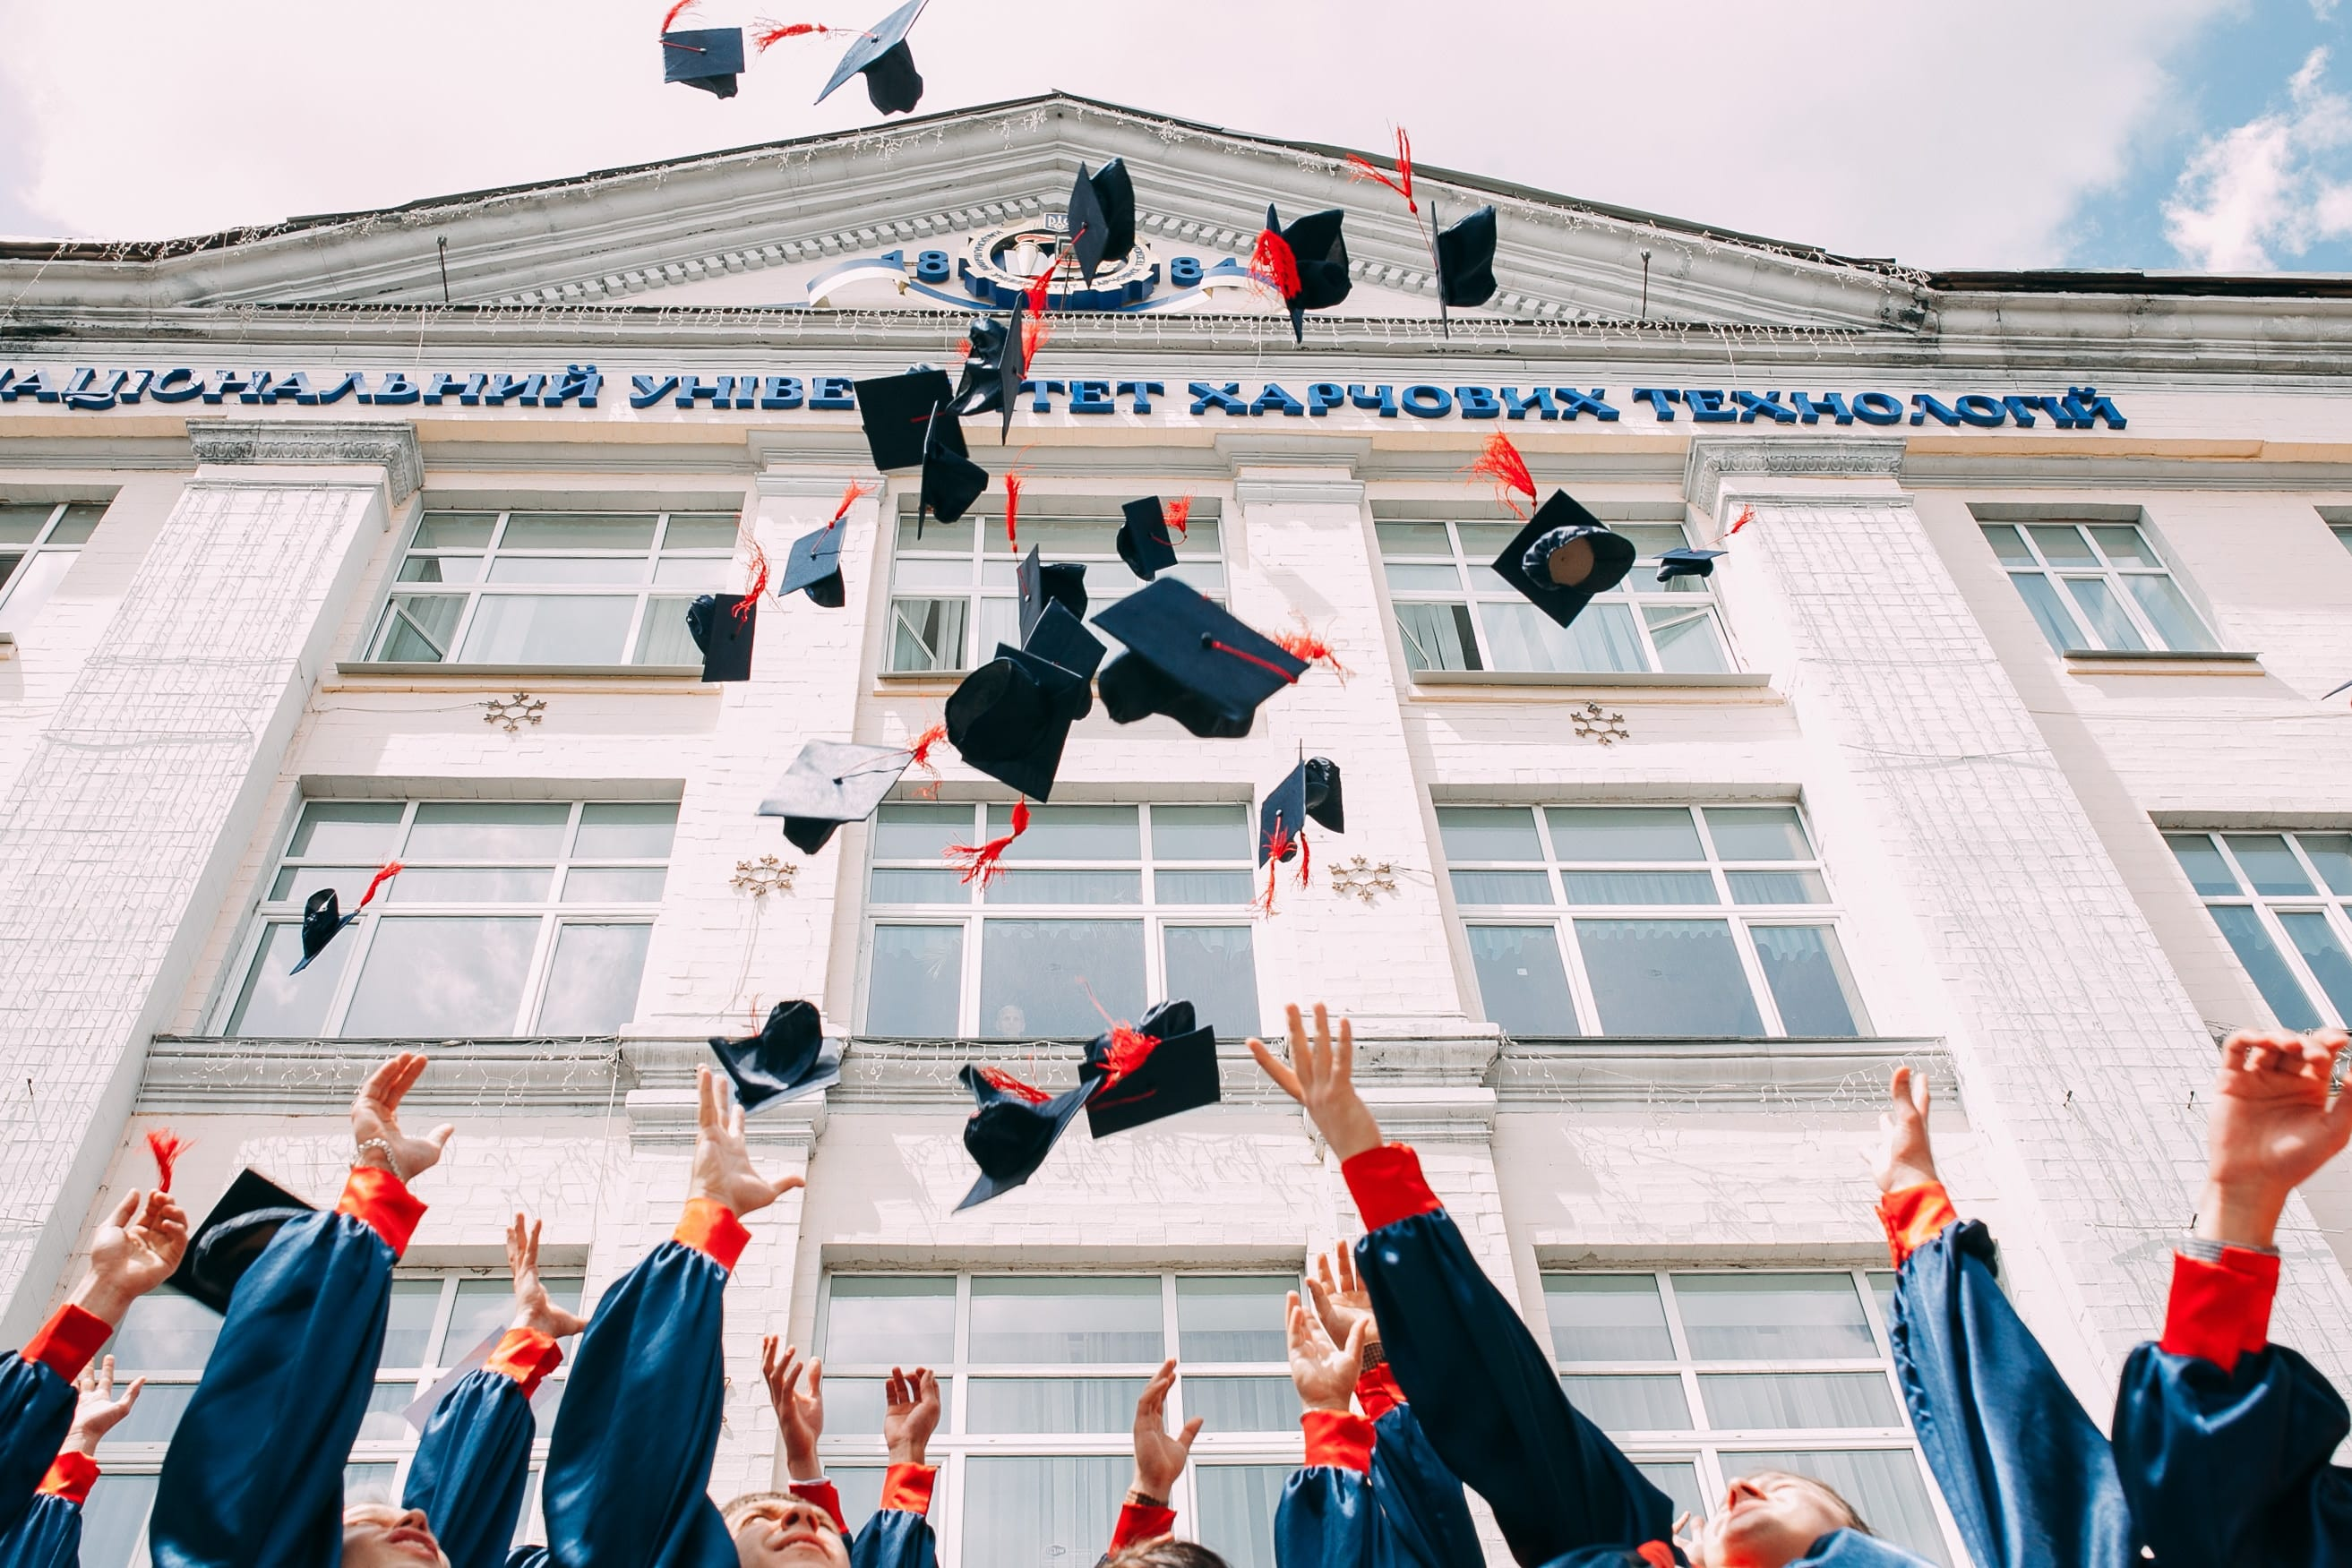 Graduates throwing their caps into the air; image by Vasily Koloda, via Unsplash.com.